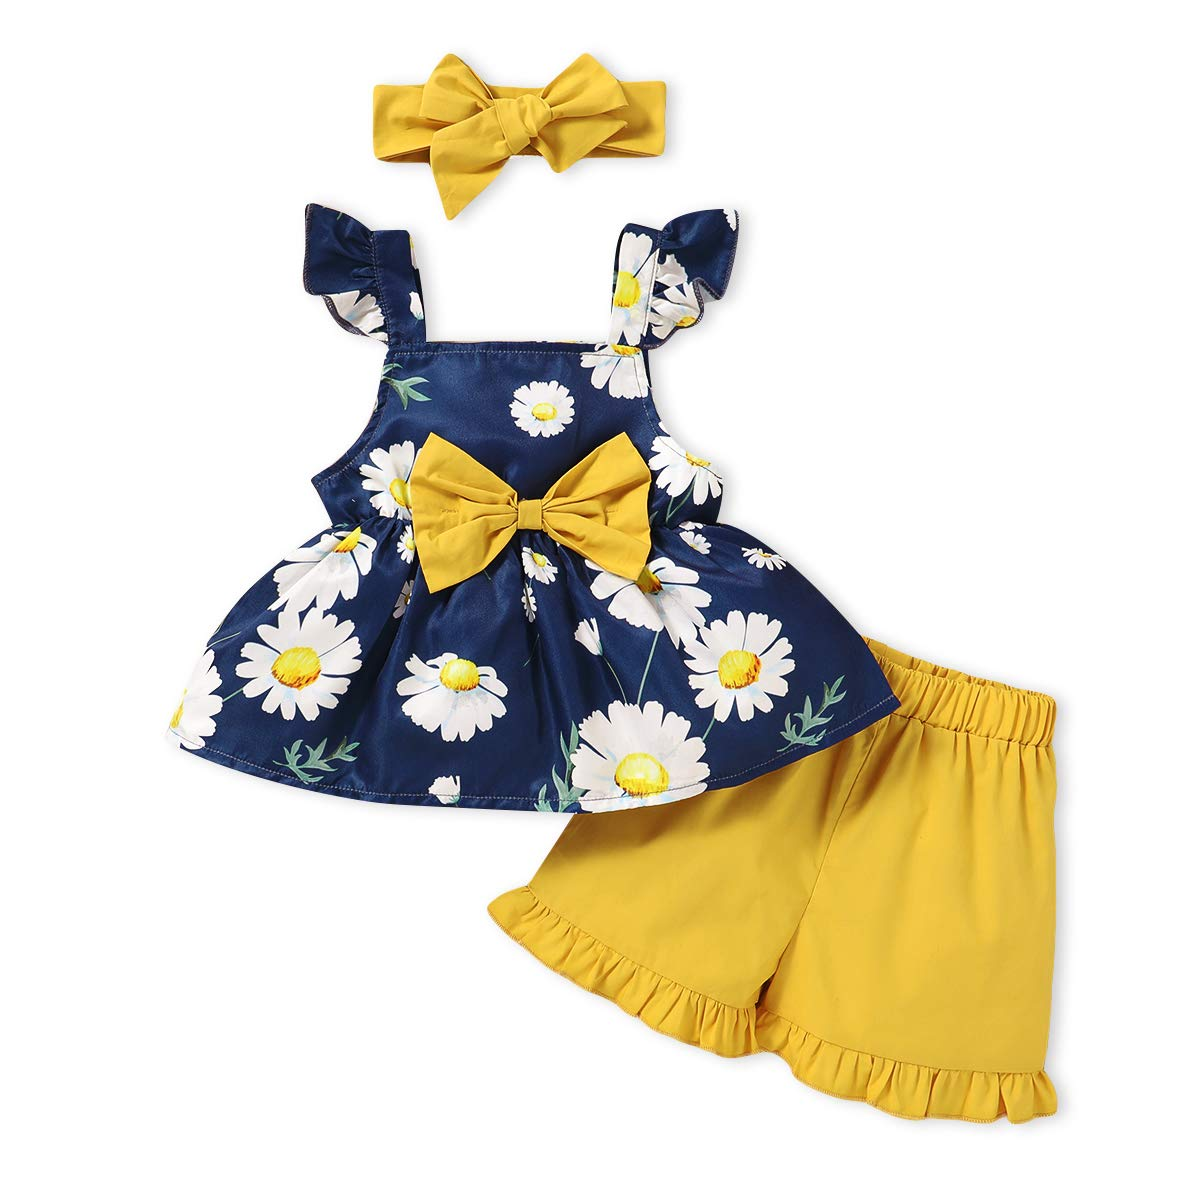 Newborn Baby Girl Clothes Infant Kids Ruffle Vest Tops +Pants Shorts+Headband Outfit Sets